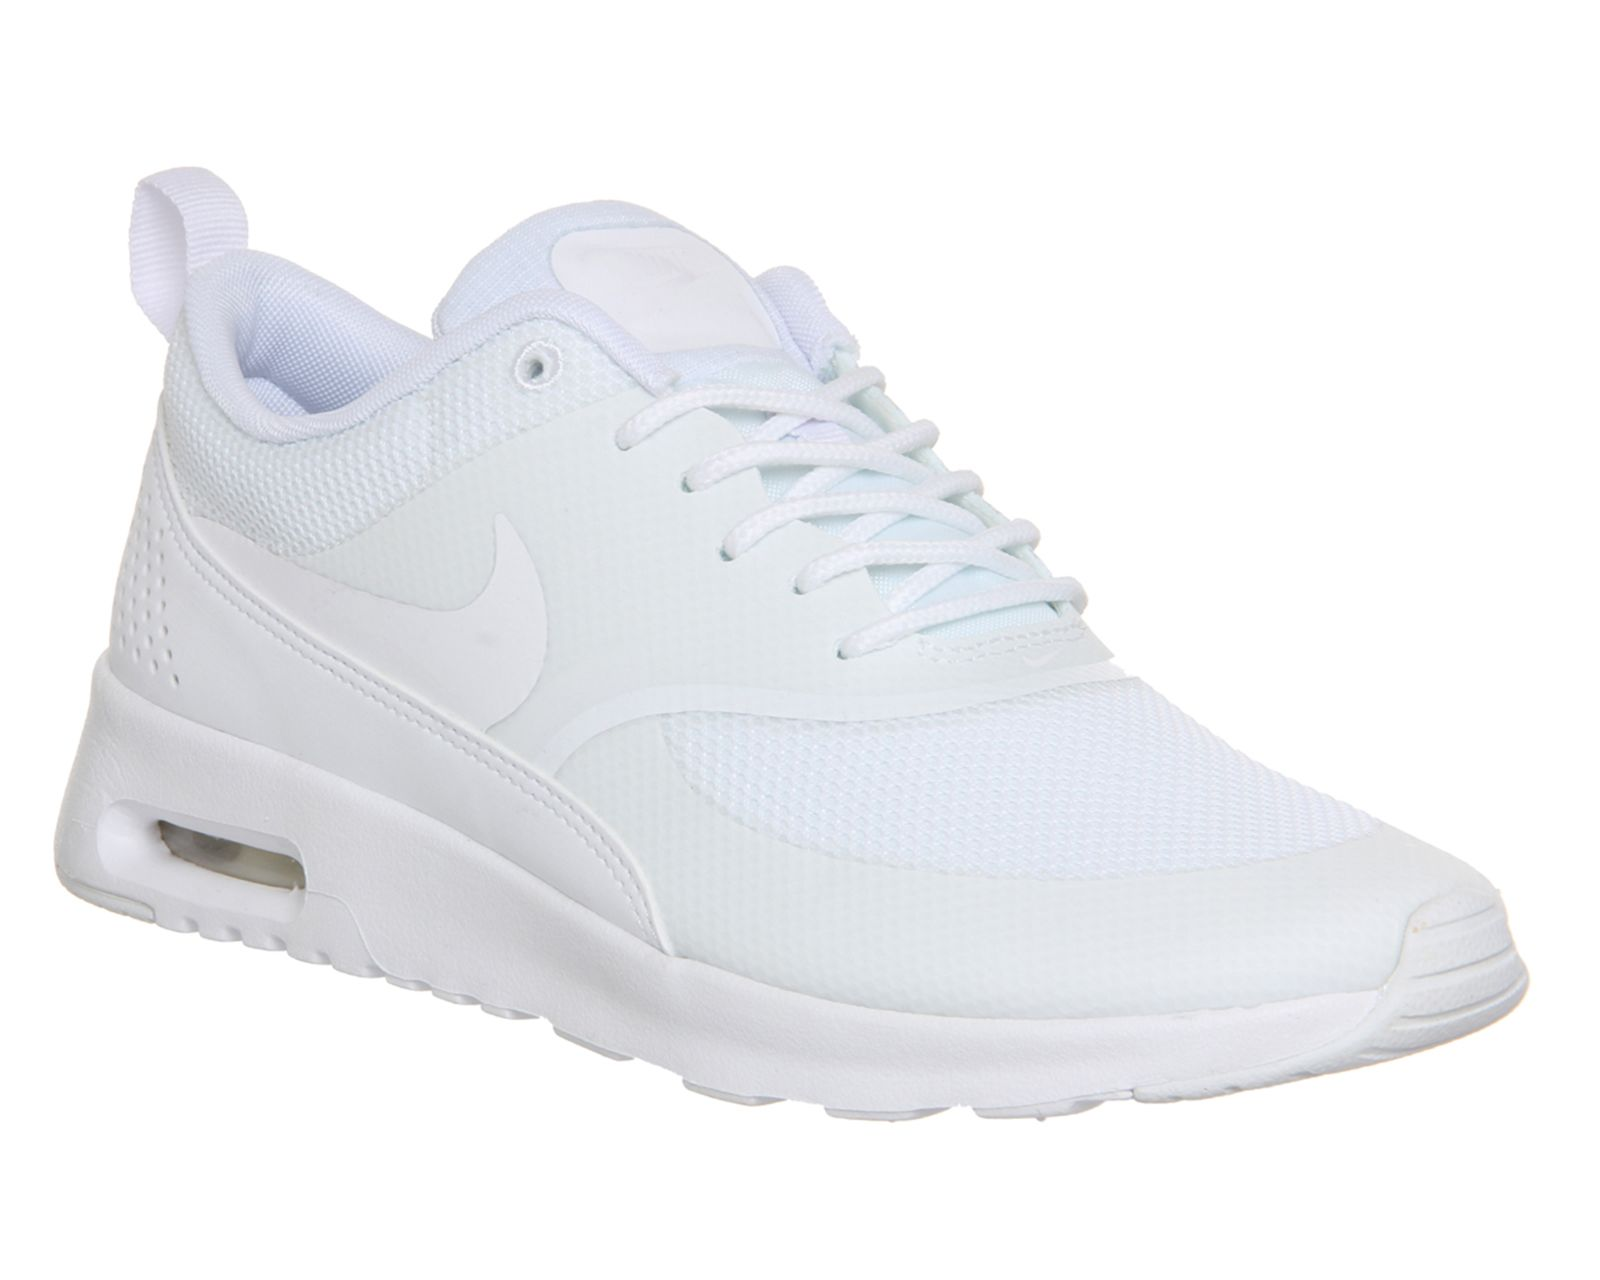 Supplier Kids Nike Air Max Thea White Hers trainers